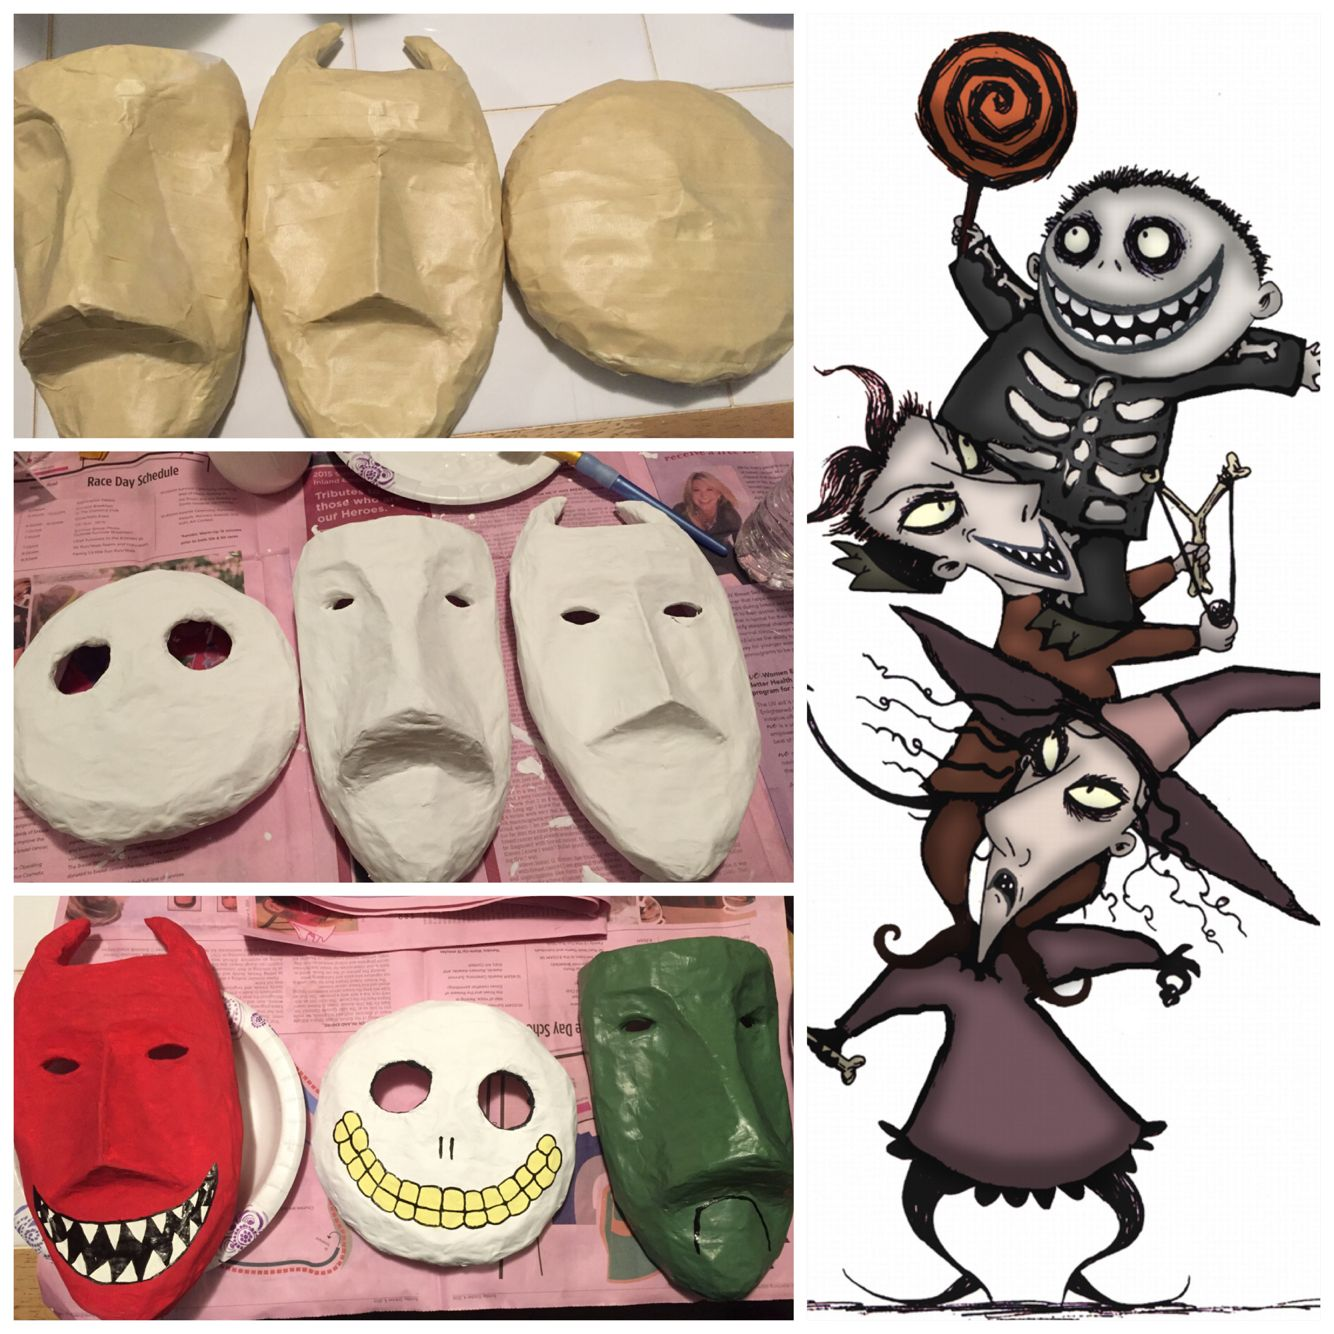 Shock, lock, & barrel masks from the nightmare before Christmas ...